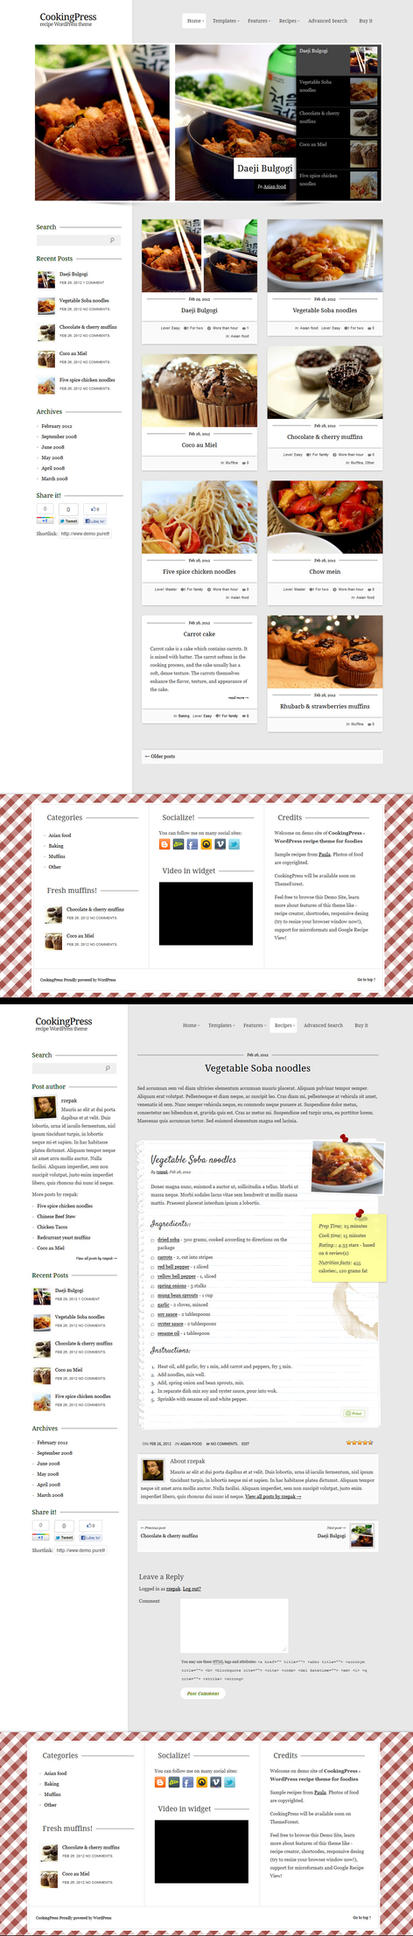 CookingPress  Recipe and  Food WordPress theme by rzepak